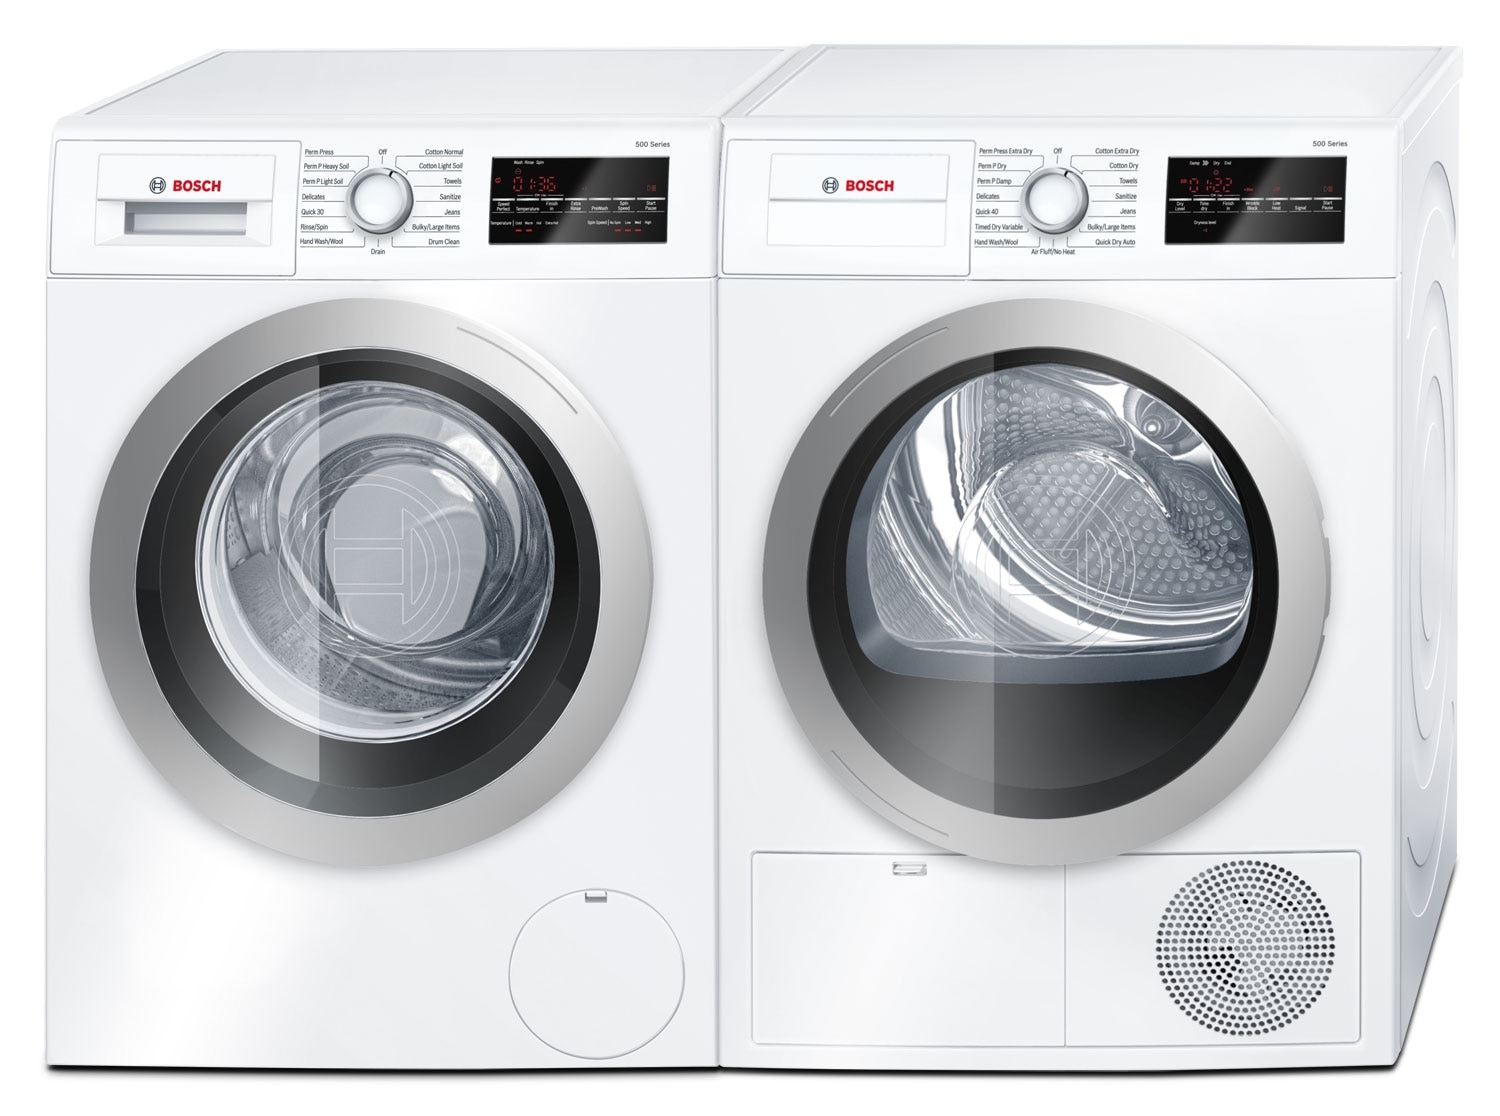 bosch 500 series 2 2 cu ft compact washer and 4 0 cu ft compact dryer white the brick. Black Bedroom Furniture Sets. Home Design Ideas